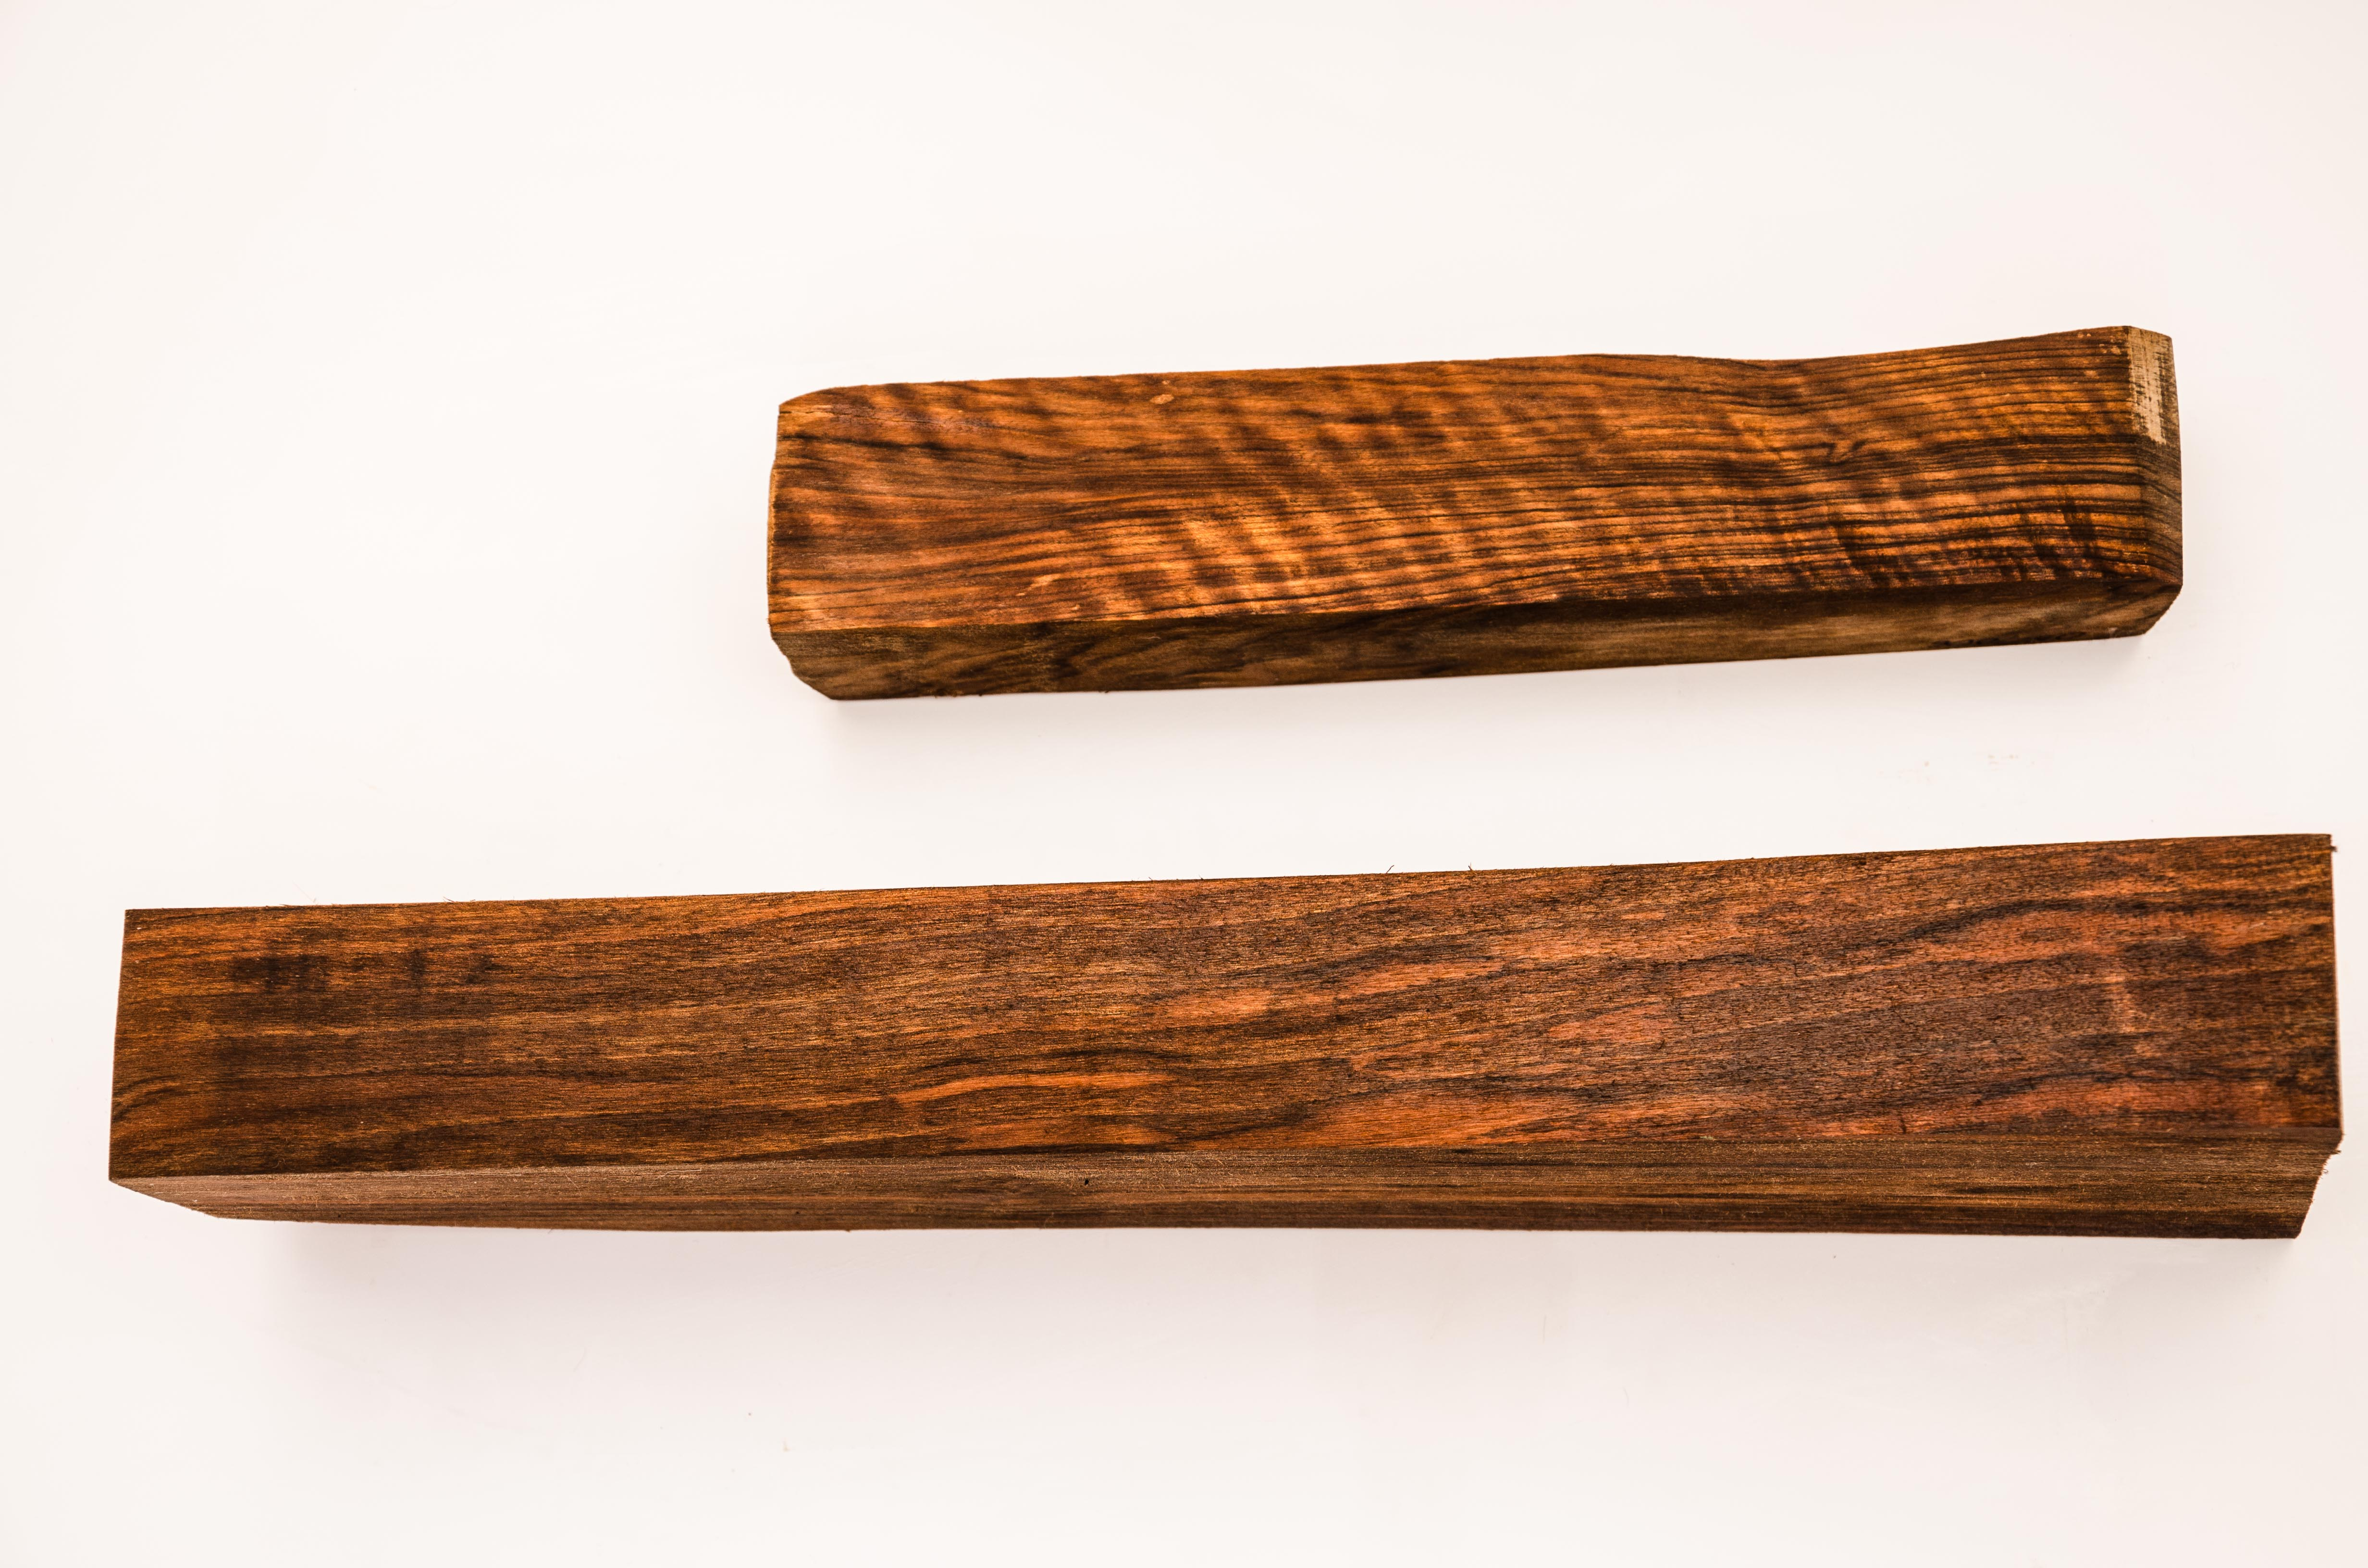 walnut_stock_blanks_for_guns_and_rifles-0534